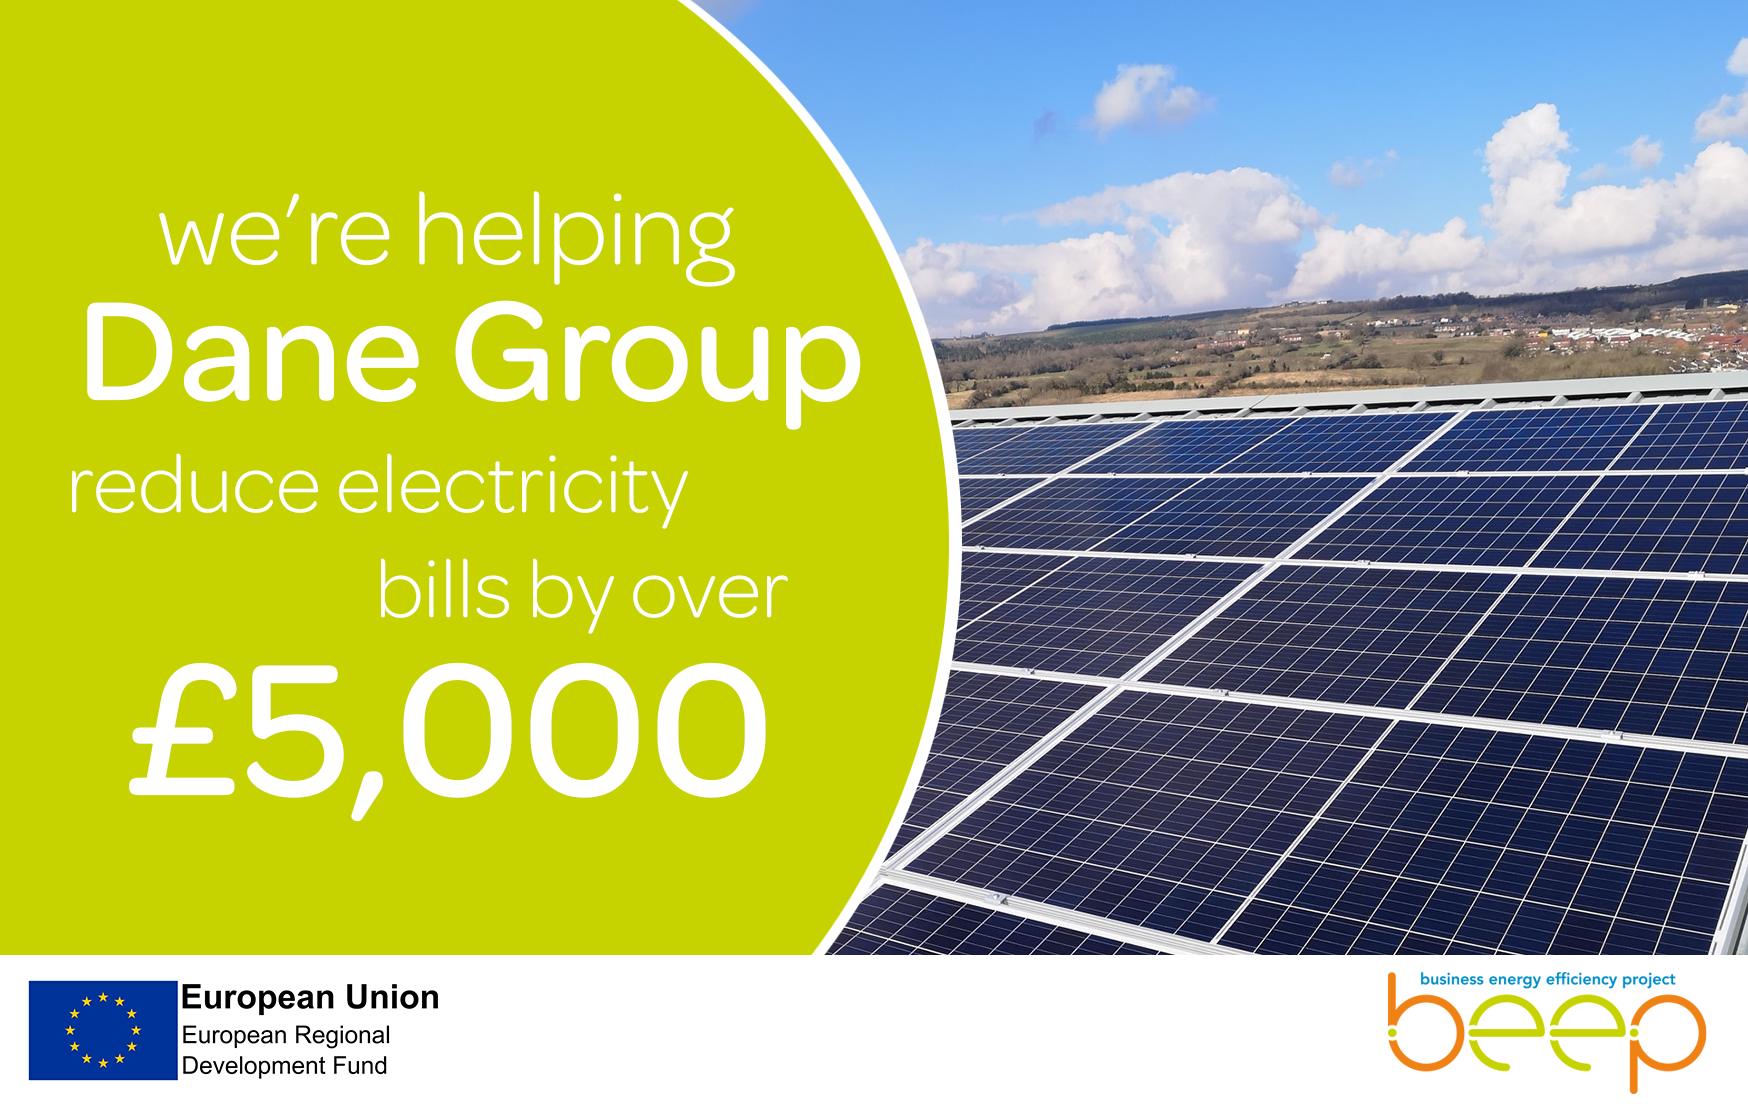 exterior of factory roof lined with solar panels text says we're helping Dane Group reduce electricity bills by over £5,000